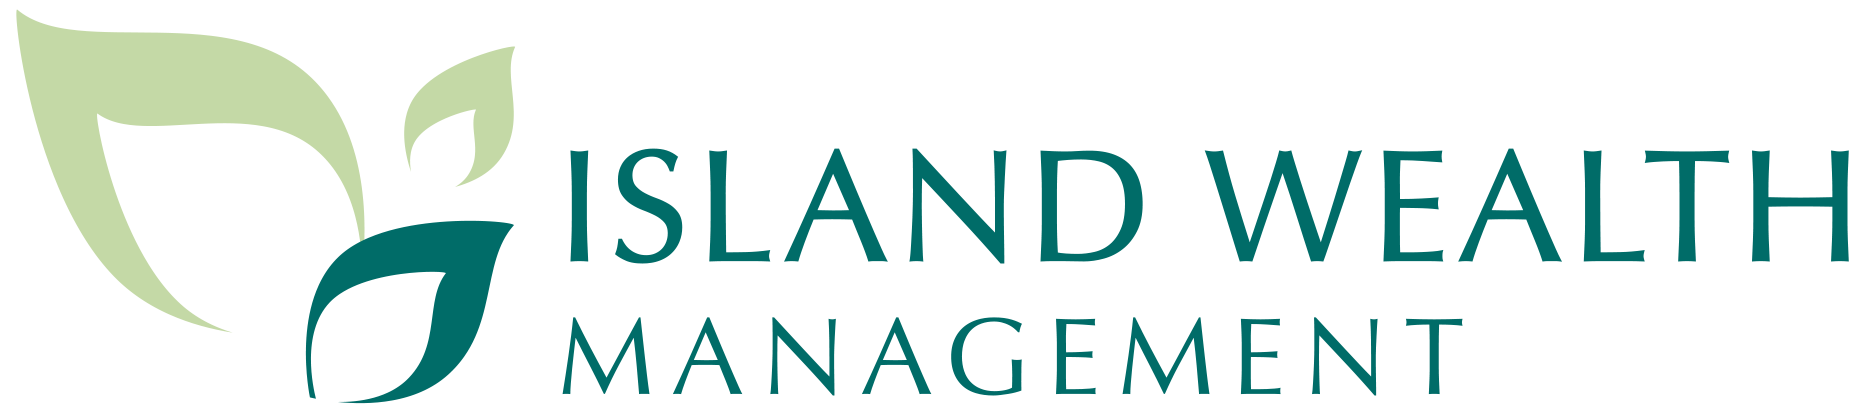 Island Wealth Management - Honolulu, HI